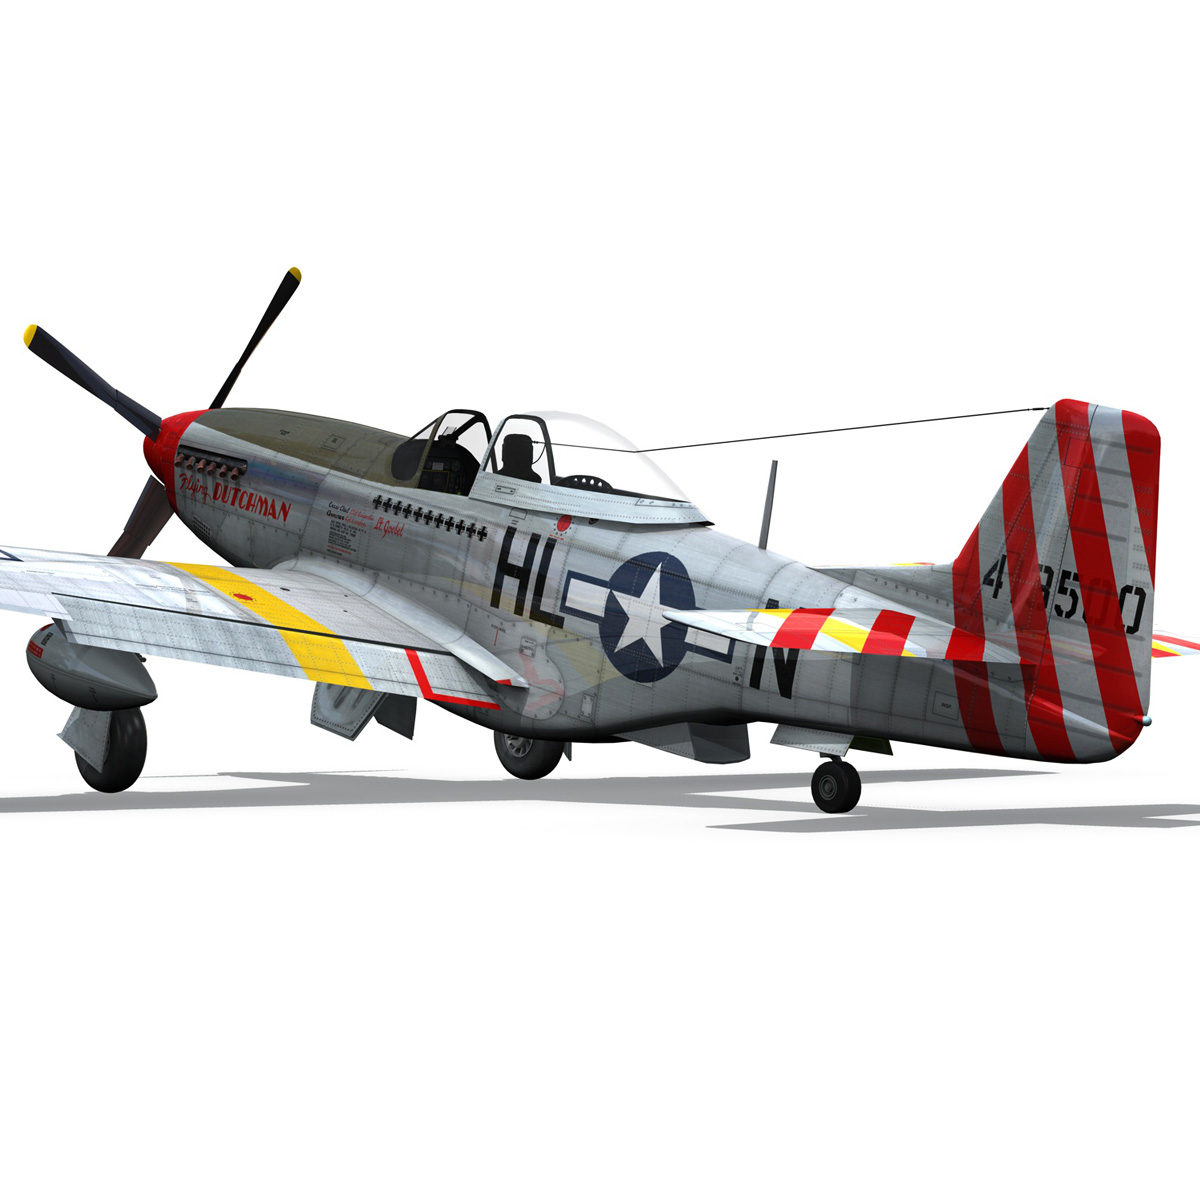 north american p-51d – flying dutchman 3d model fbx lwo lw lws obj c4d 267127